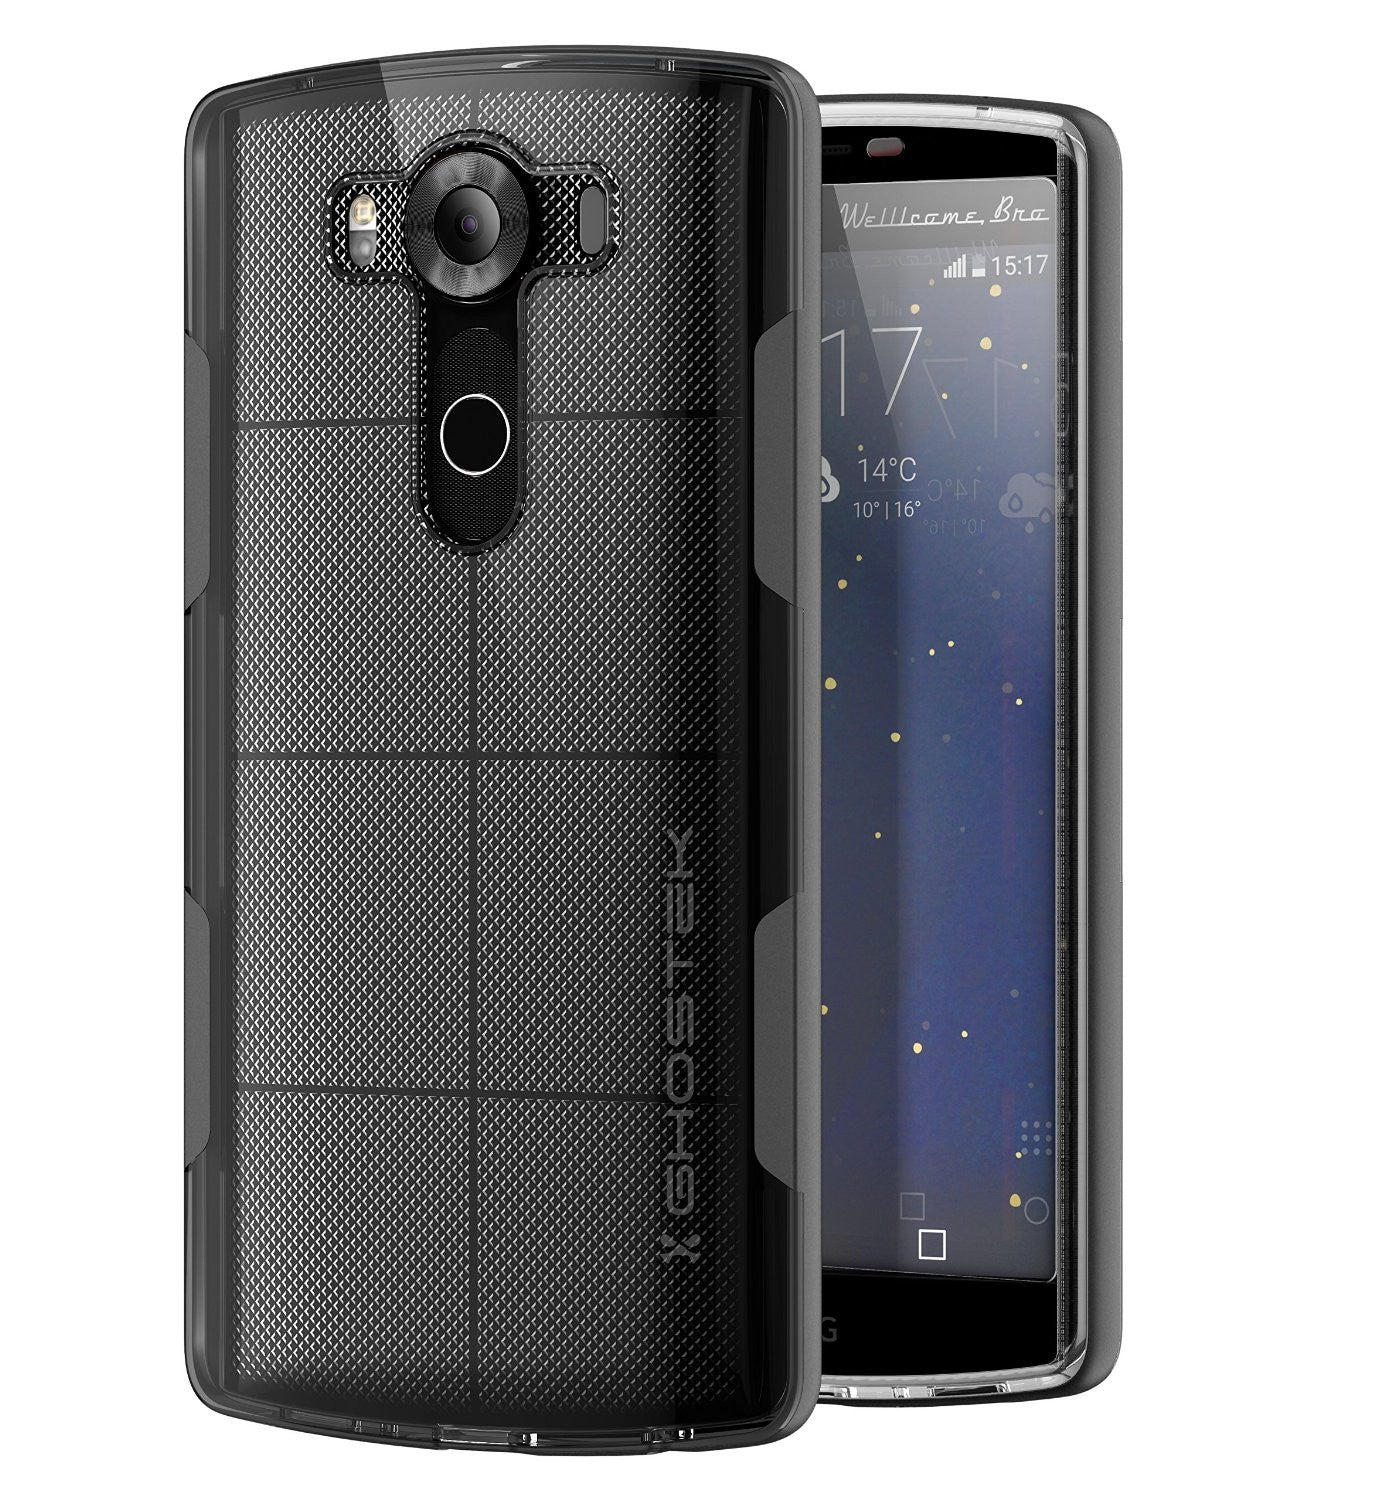 LG V10 Case, Ghostek® Cloak Black Slim Hybrid Impact Armor Cover | Lifetime Warranty Exchange